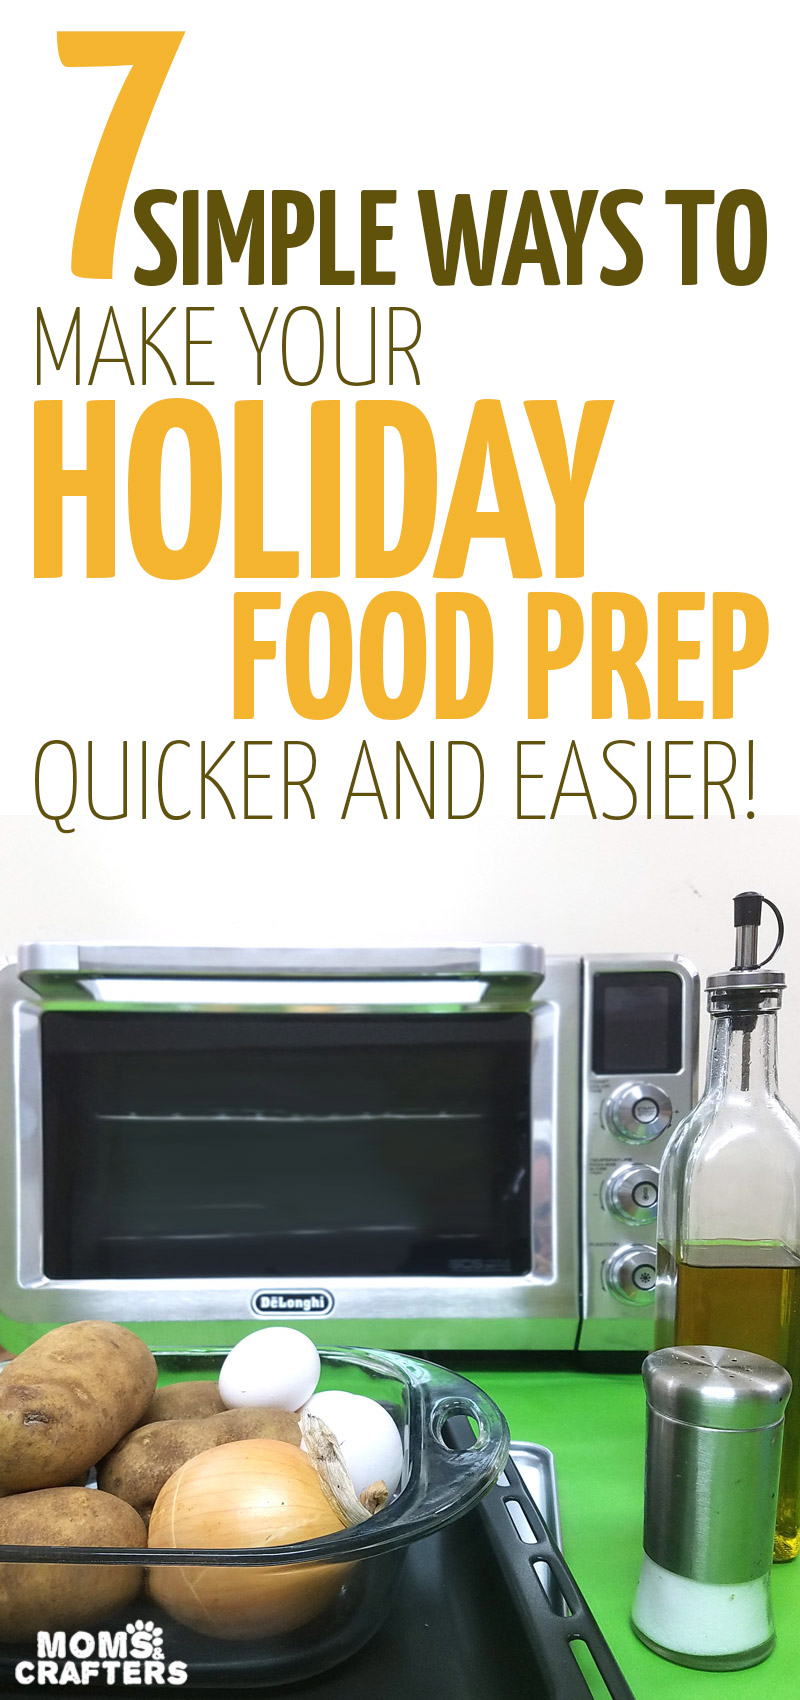 Streamline your holiday prep with these super simple tips - plus a delicious potato kugel recipe! Cook your favorite traditional dishes much easier! #christmas, #holidays #winter #hanukkah #recipe